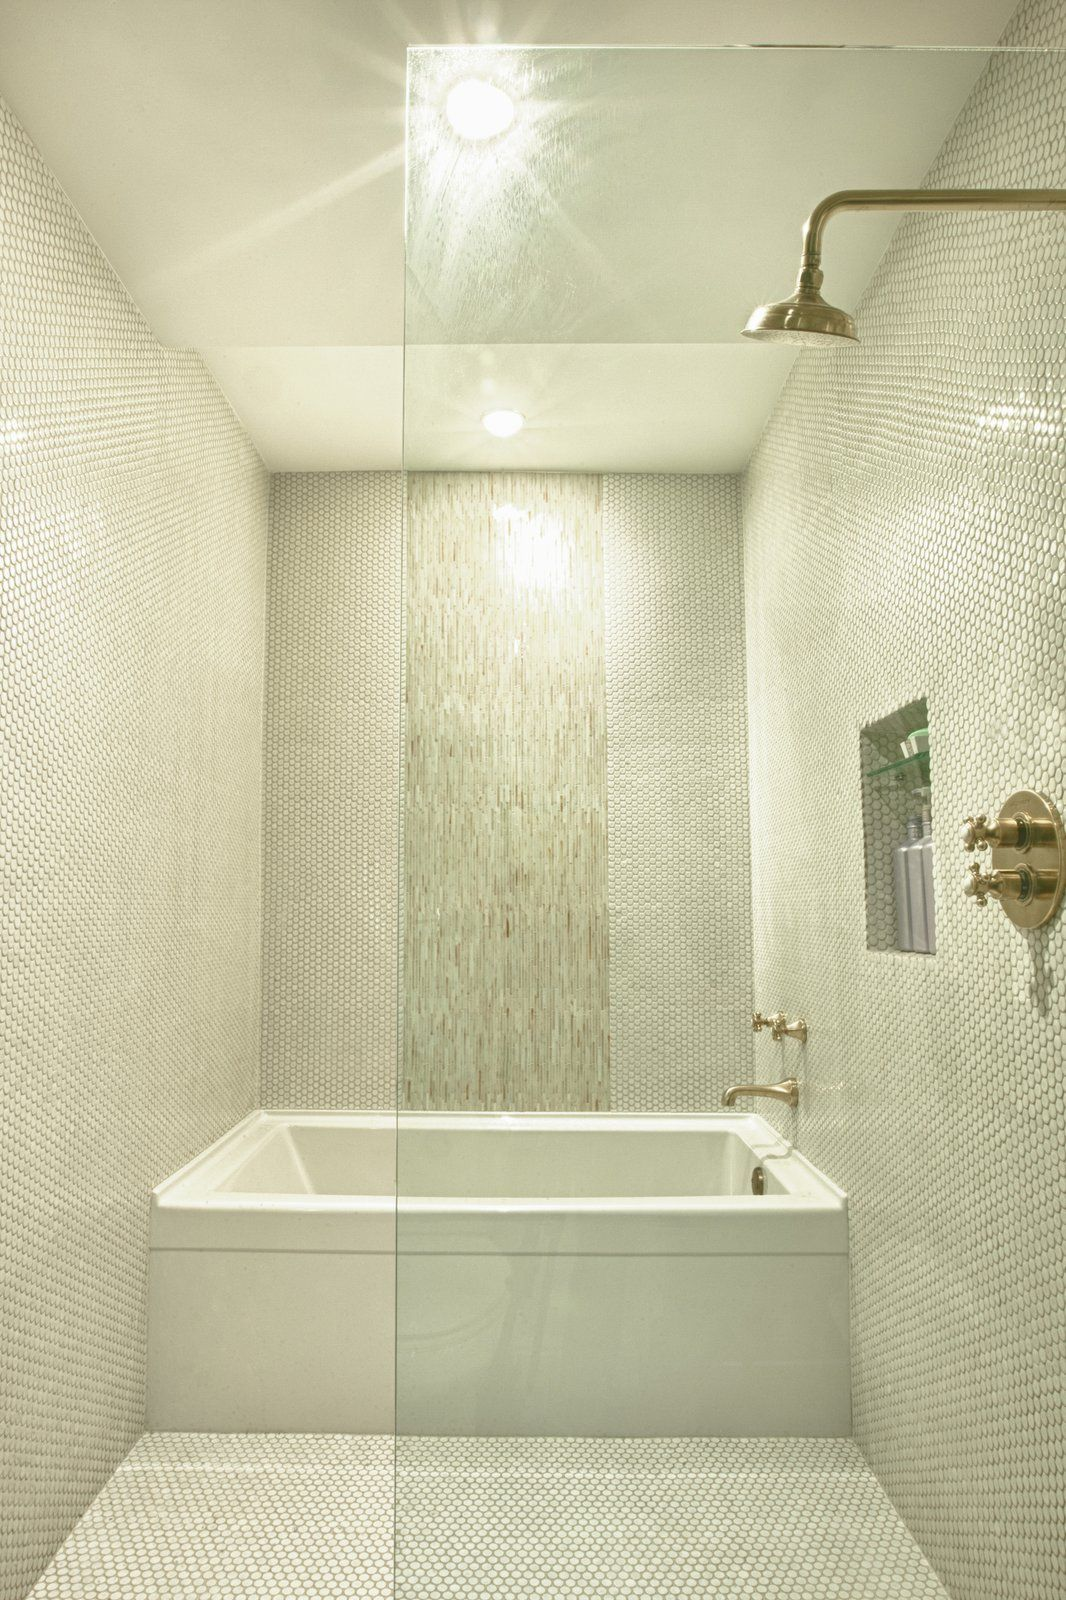 Modern Home With Bath Room Ceramic Tile Floor Alcove Tub Open Shower Ceramic Tile Wall And Ceiling Ligh Bathroom Interior Small Wet Room Wet Room Bathroom